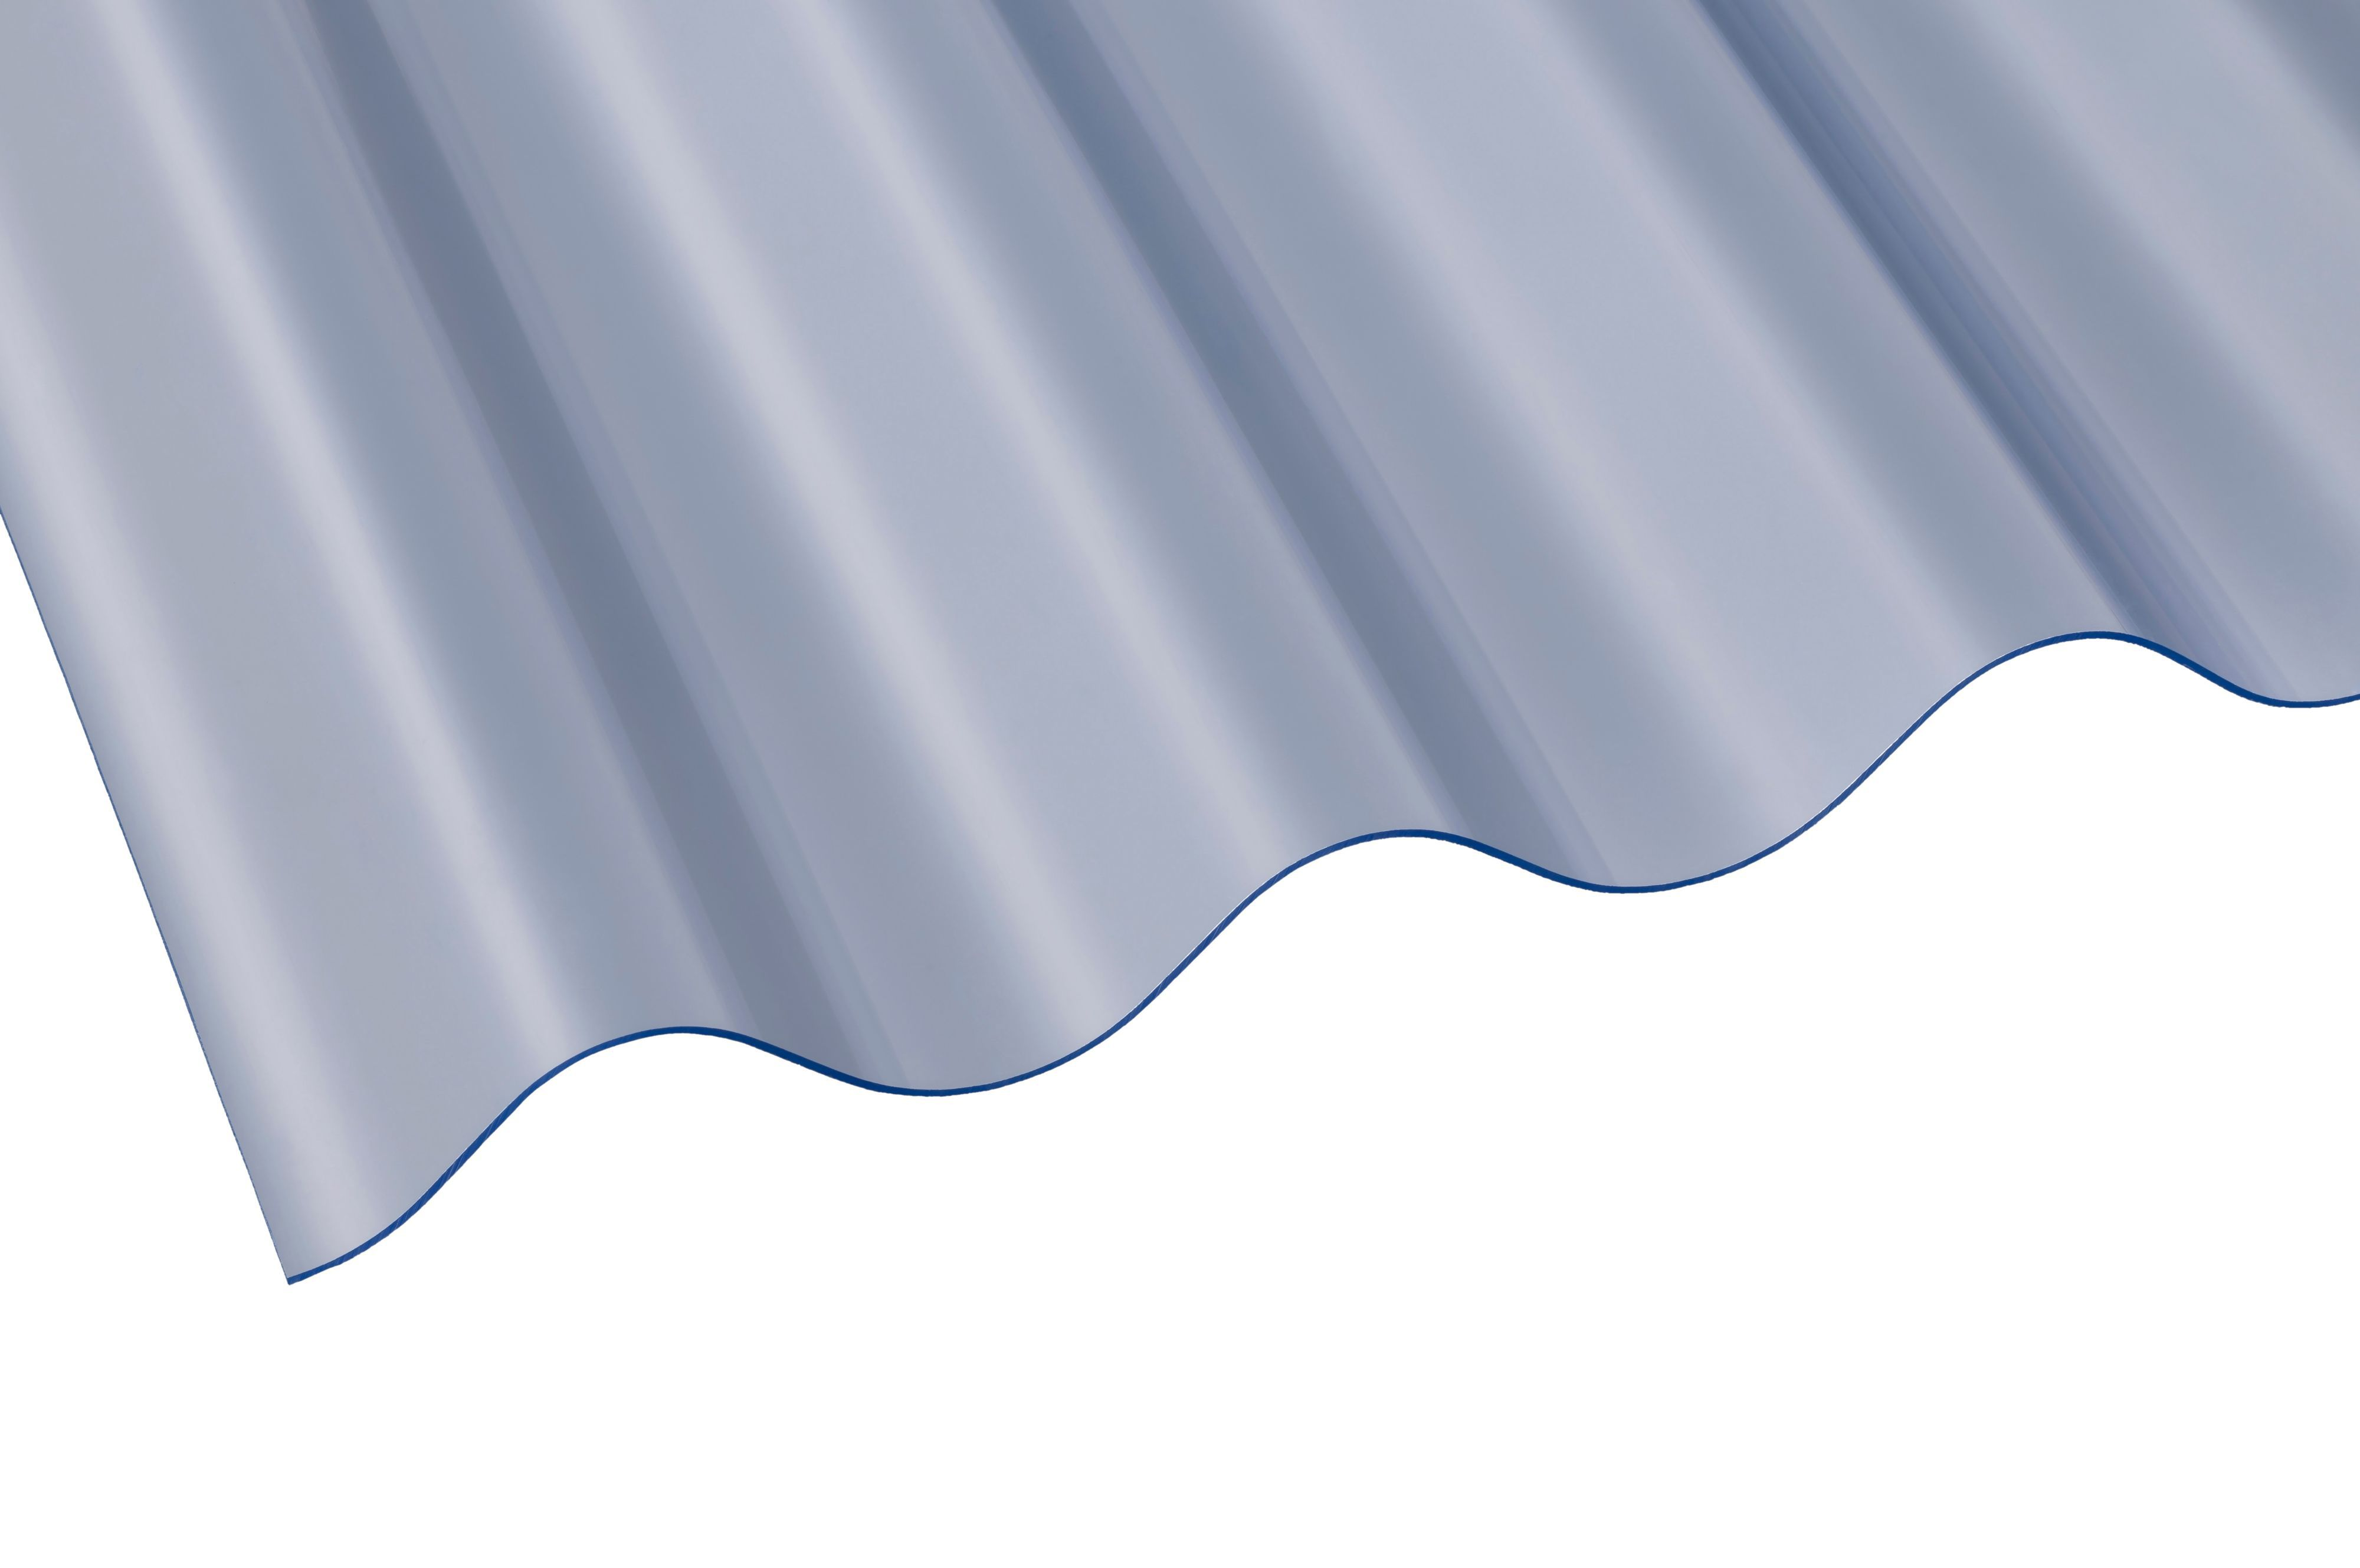 Clear Corrugated Pvc Roofing Sheet 3050mm X 762mm, Pack Of 10